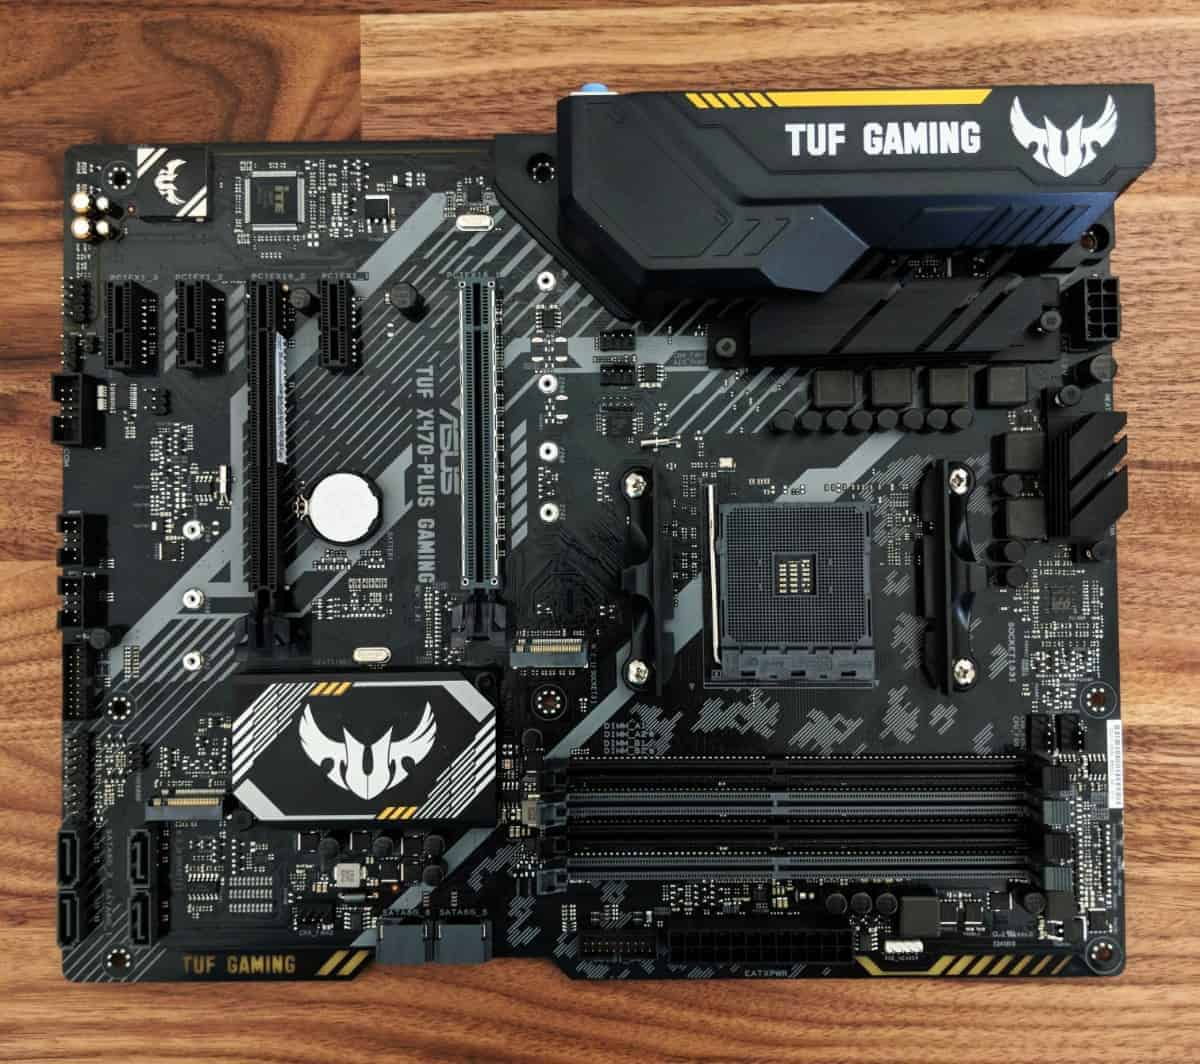 asus-tuf-x470plus-Photos-04 ASUS TUF X470-Plus Gaming Review